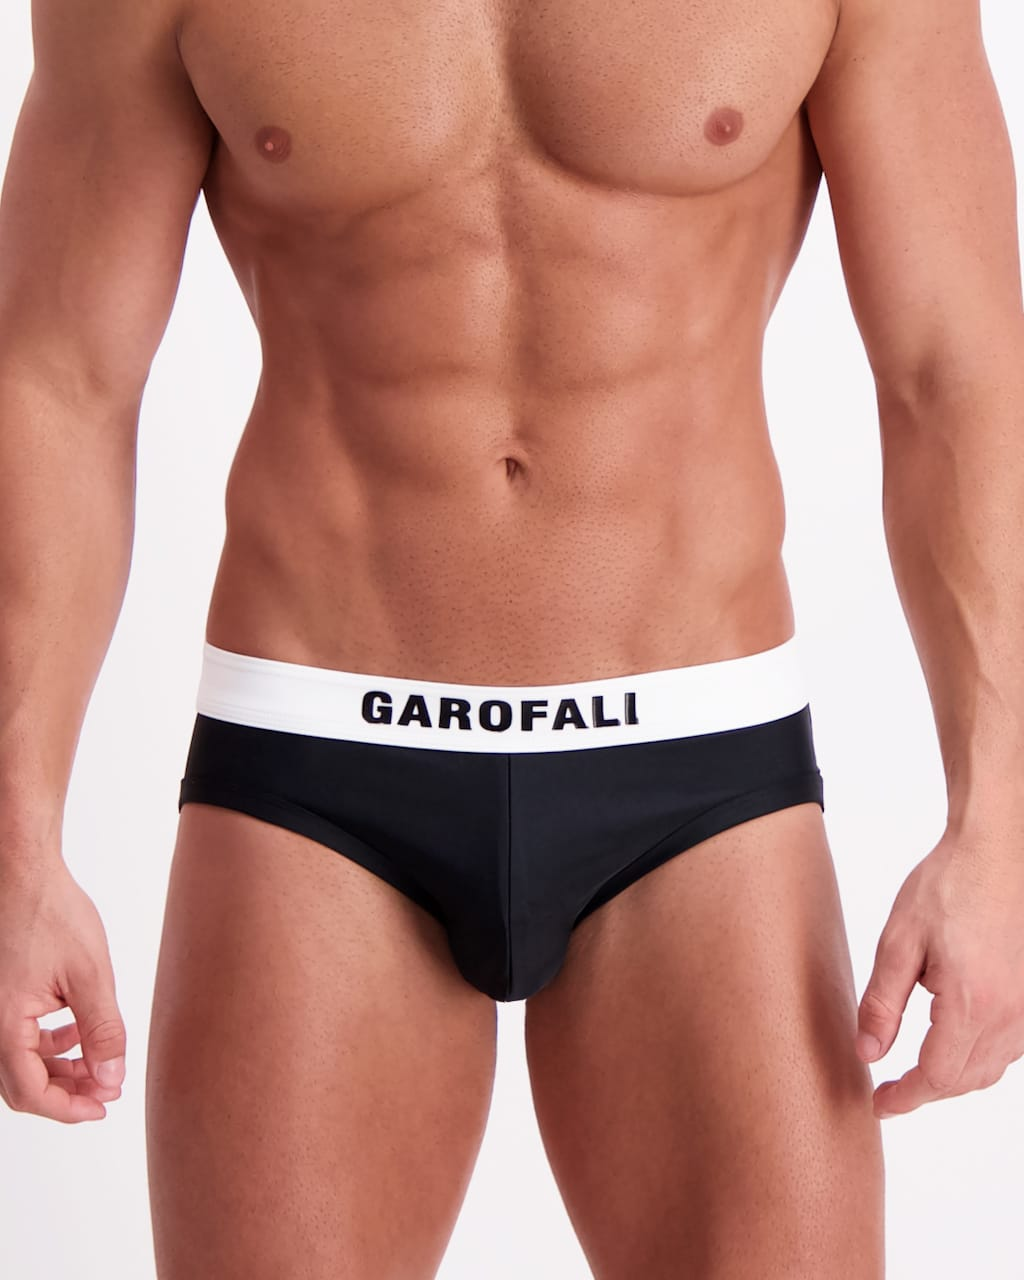 Underwear Mens Fashion Garofali Male Swim Swimwear